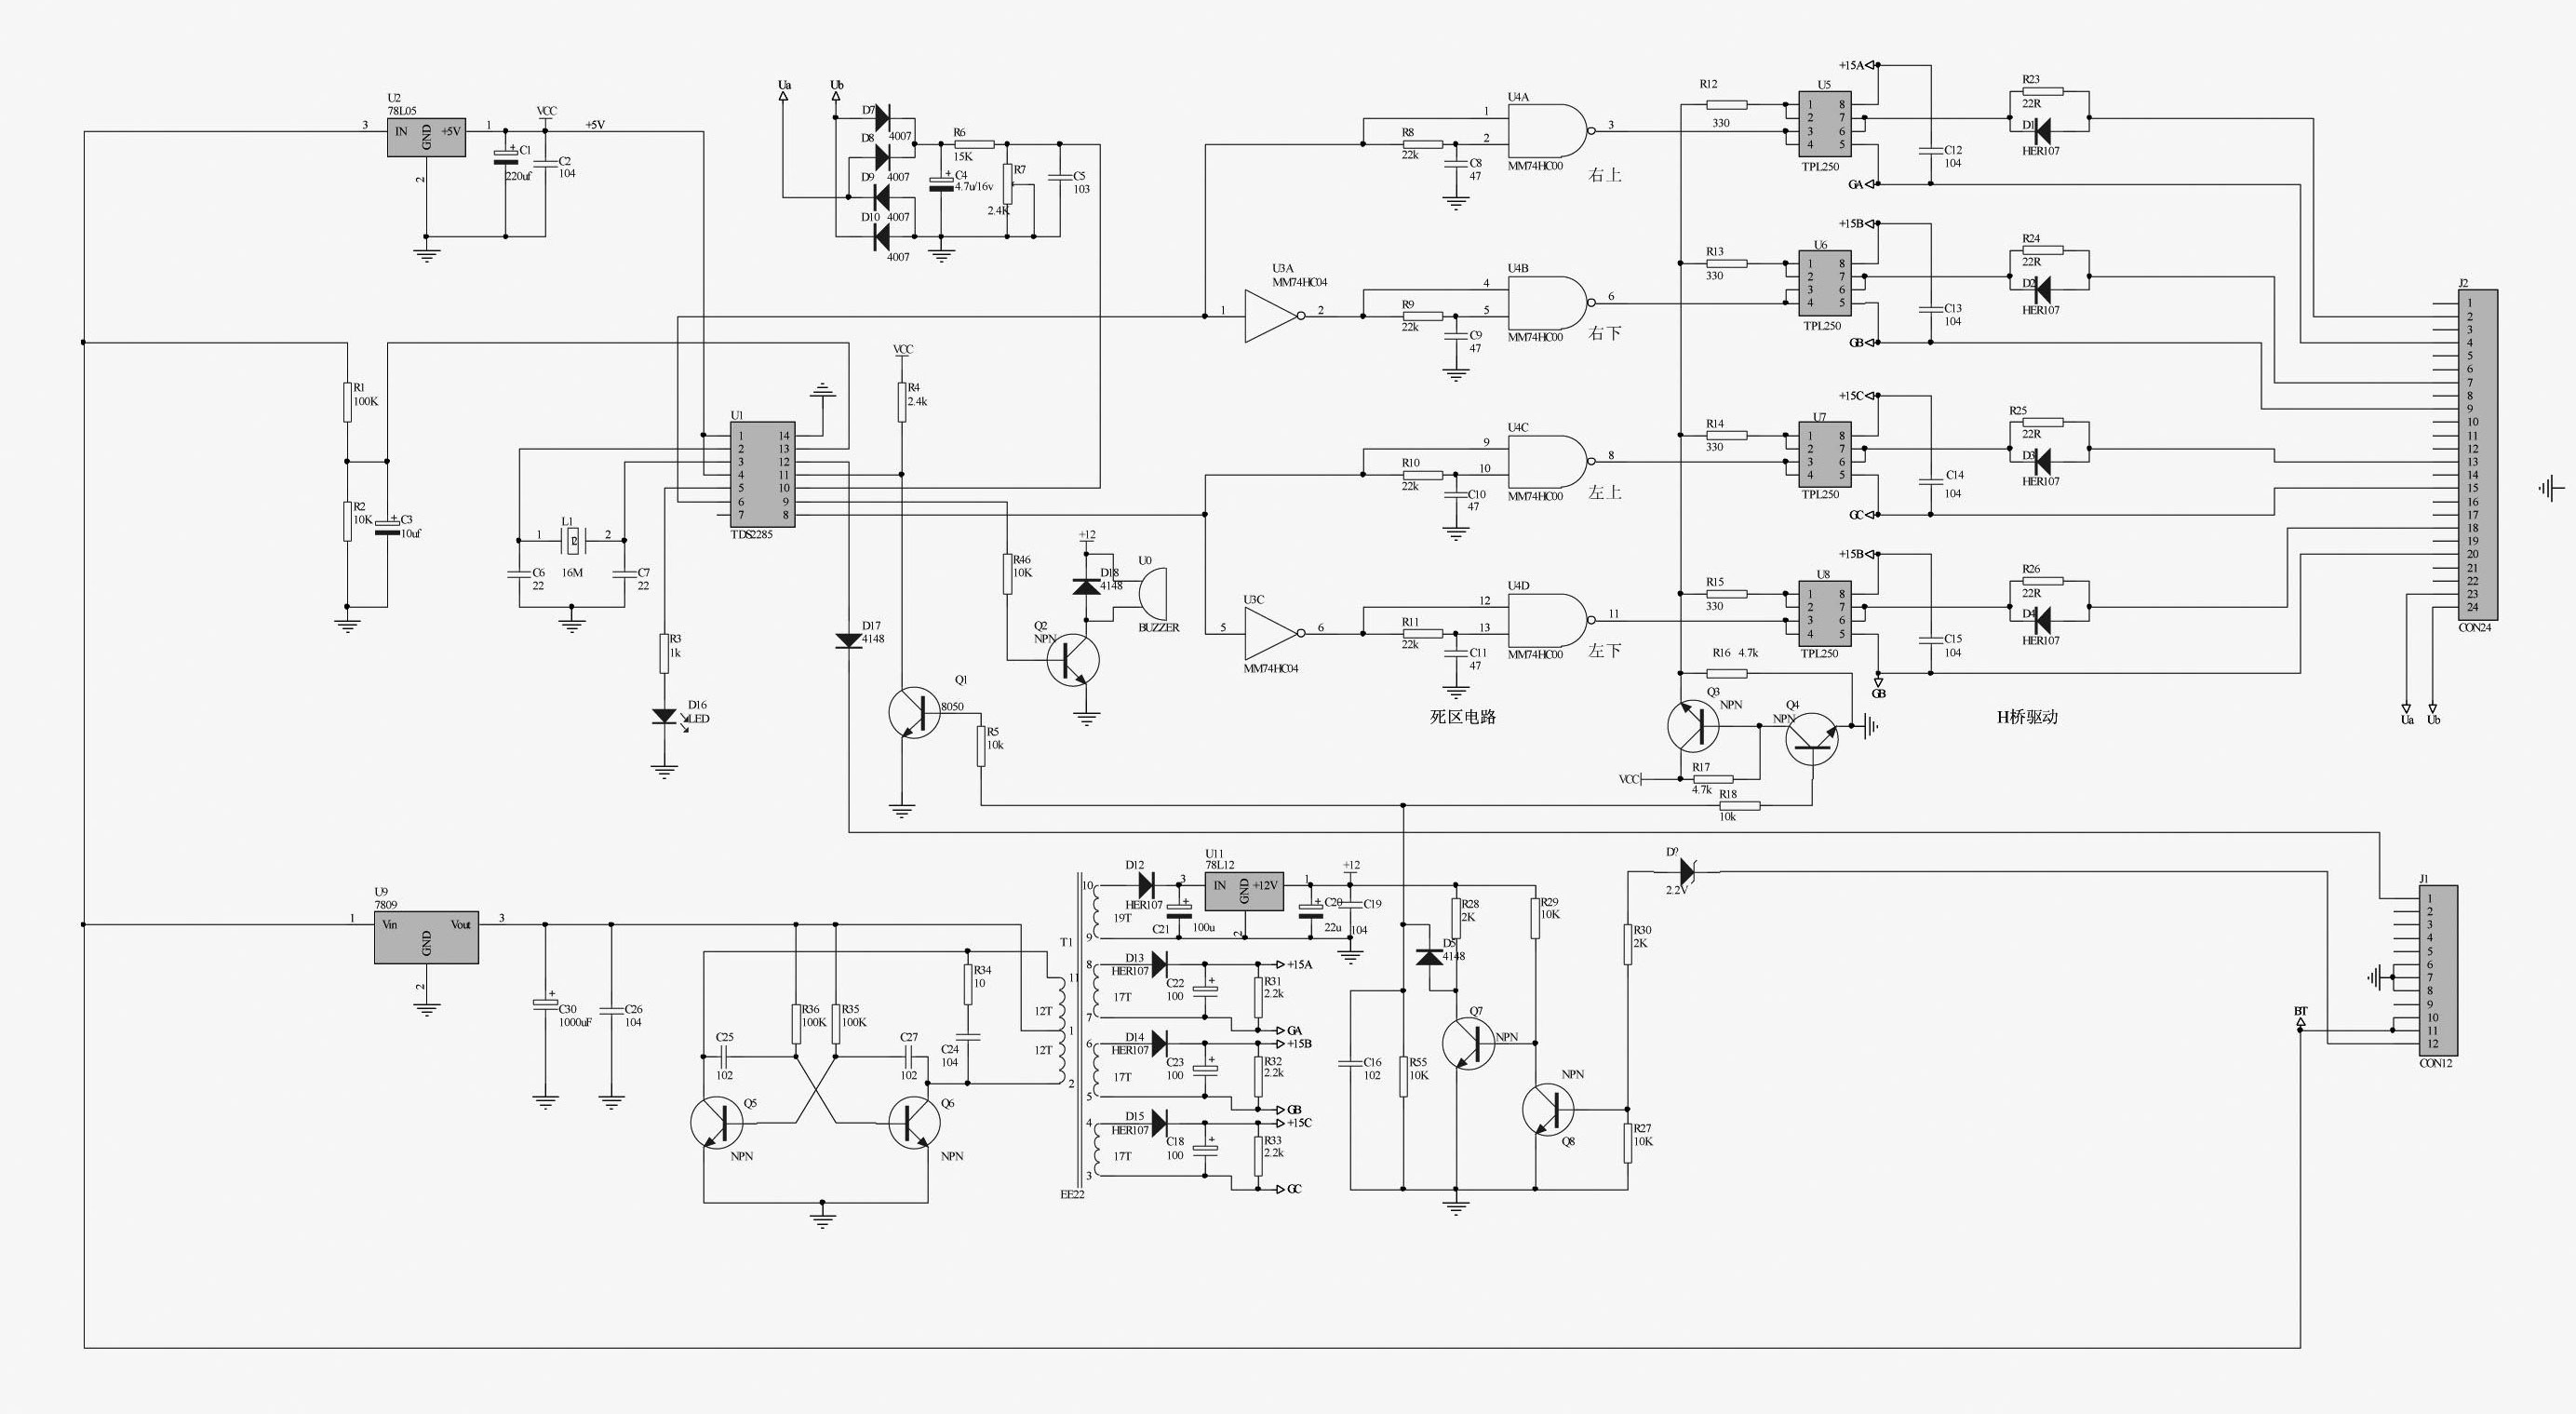 Volt Watt Power Inverter Design Process GoHzcom - Circuit diagram of an inverter